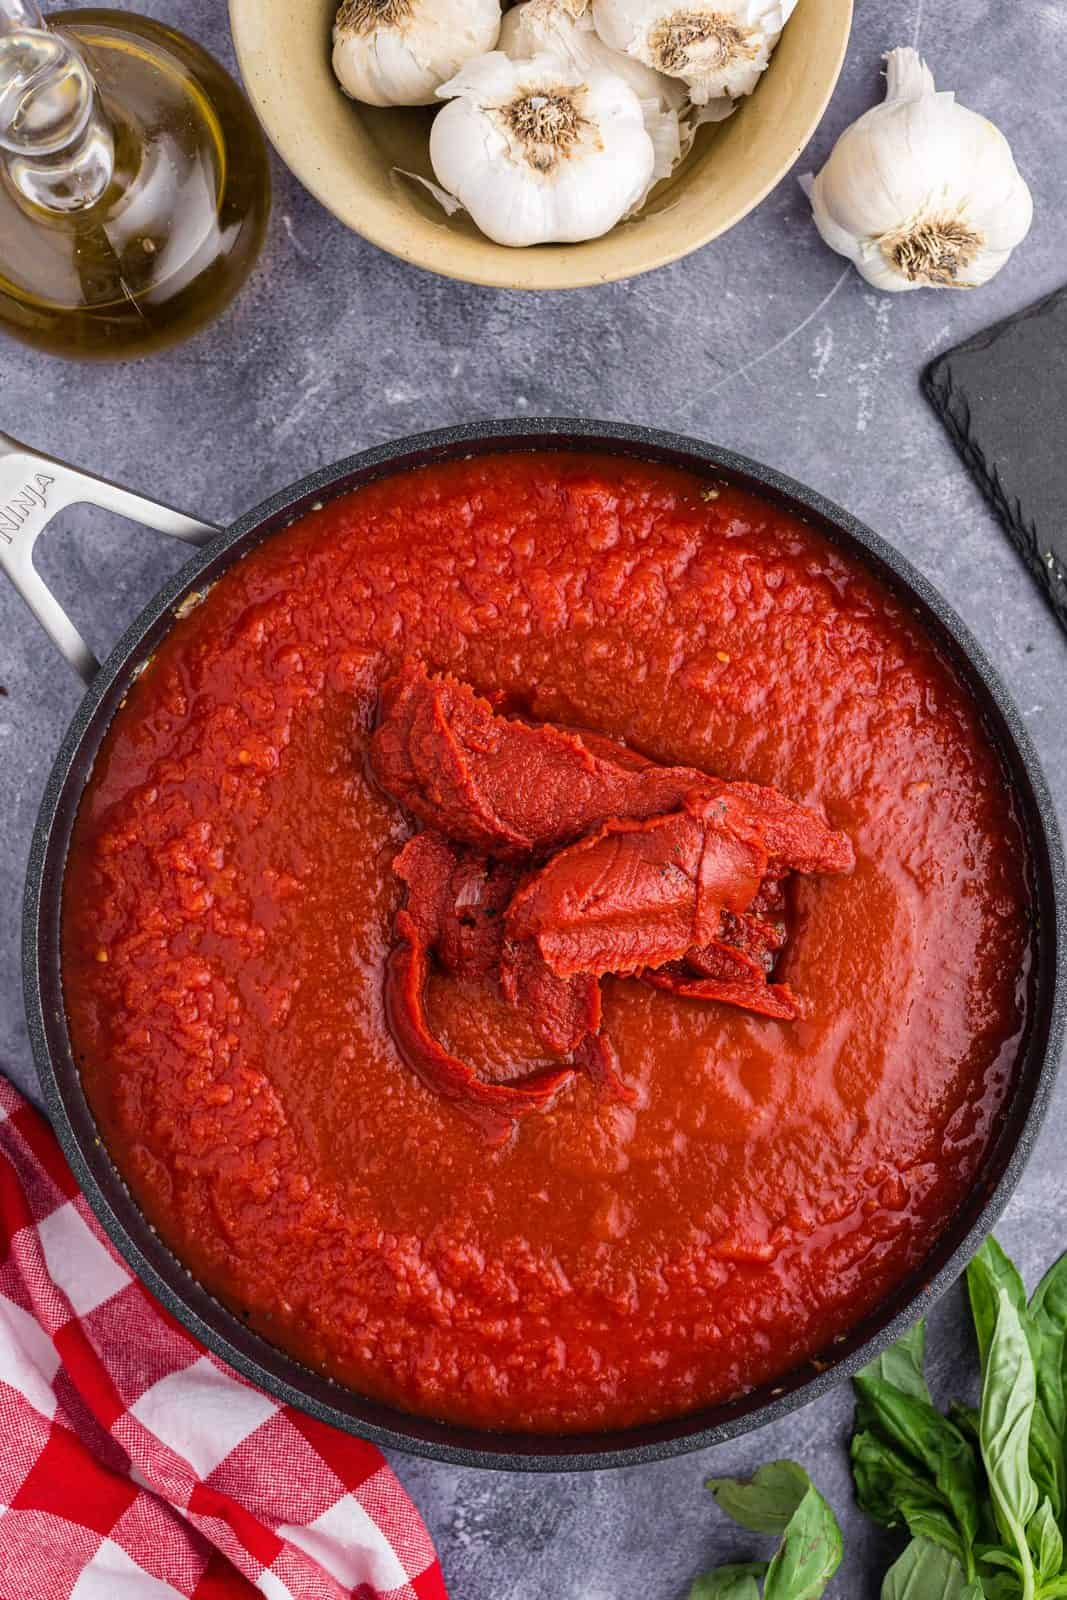 Tomato paste, tomato sauce and crushed tomatoes added to pan.